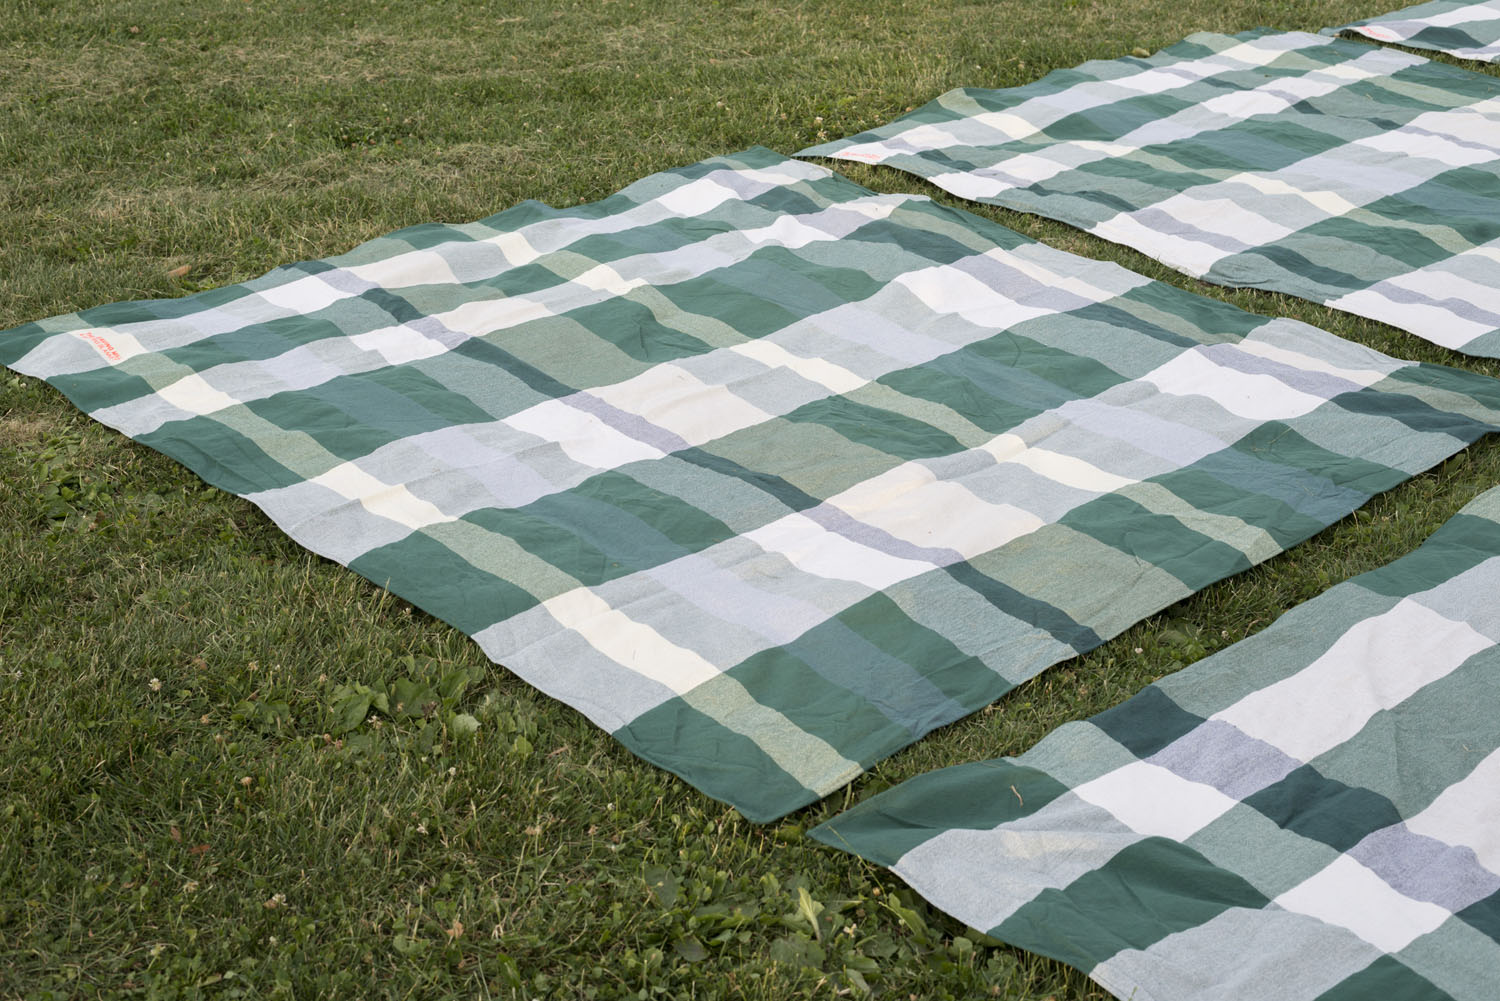 blanket on grass.jpg